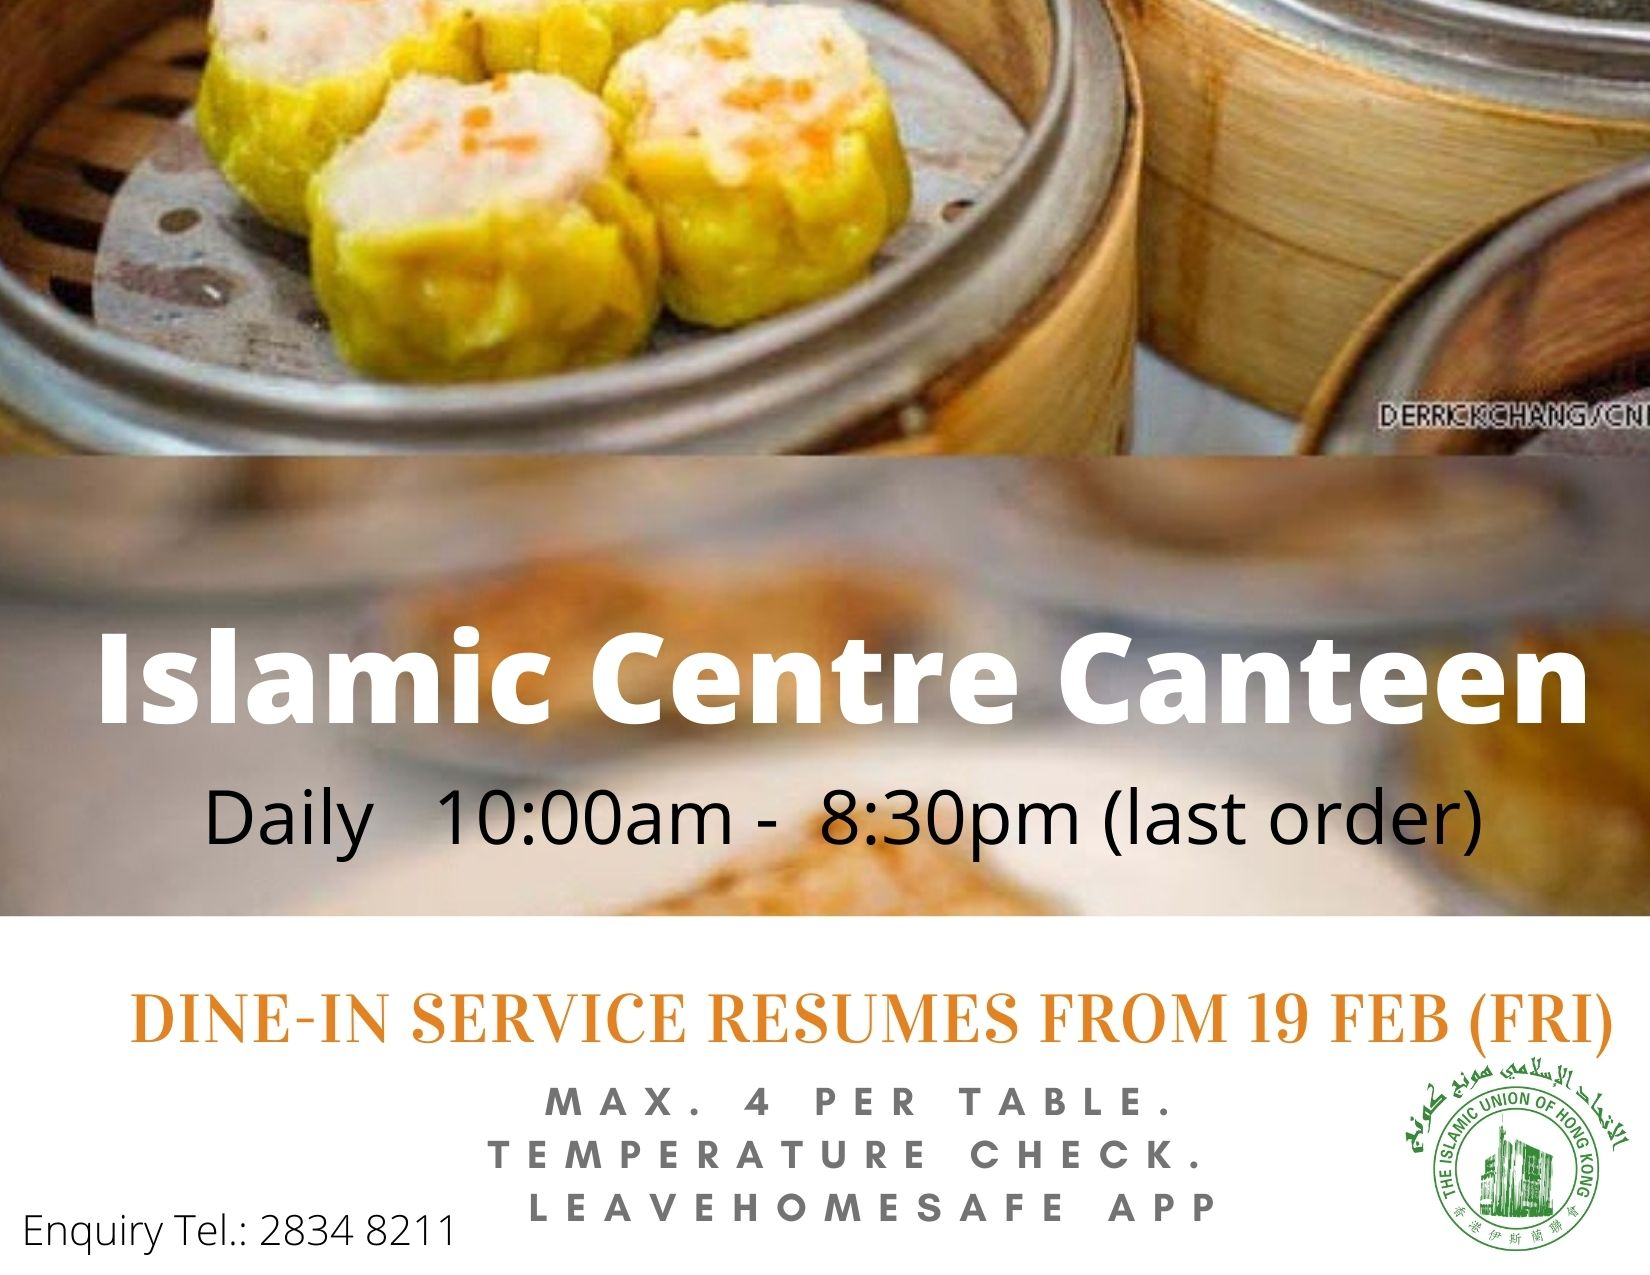 Islamic Centre Canteen Dine-in Service Resume